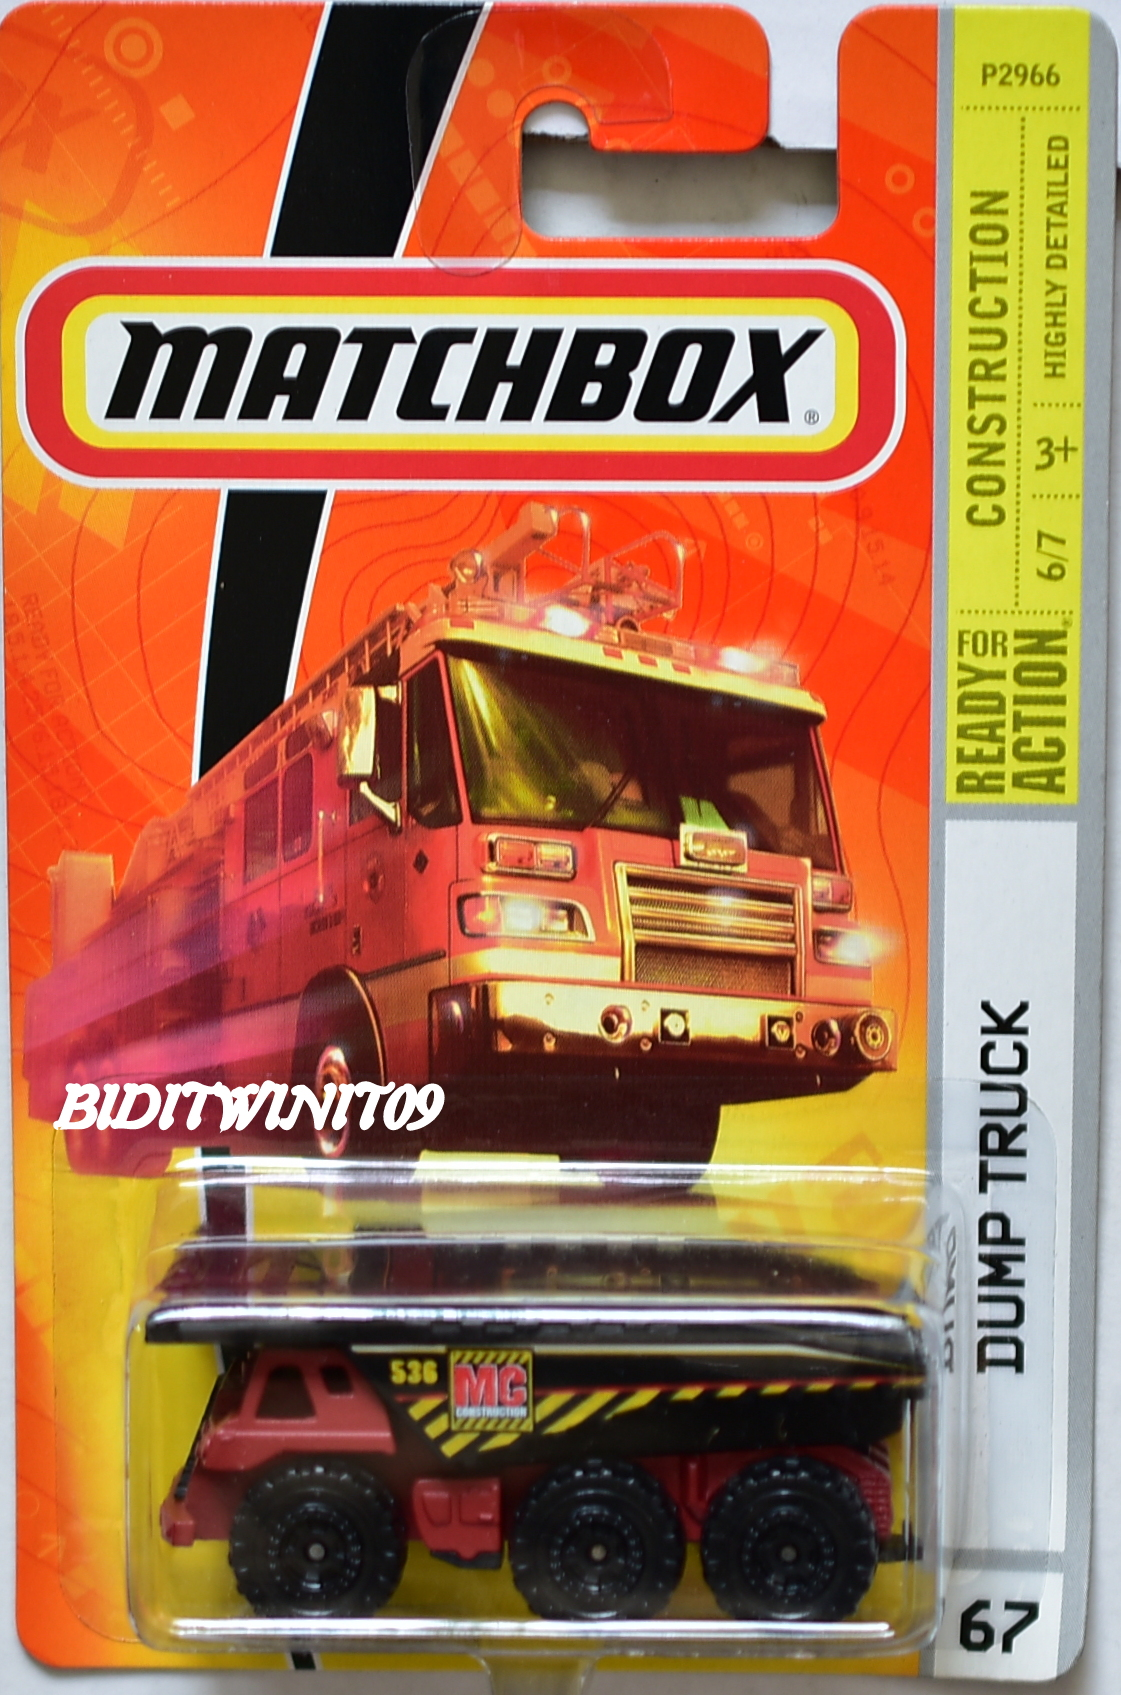 MATCHBOX 2009 CONSTRUCTION DUMP TRUCK #67 E+